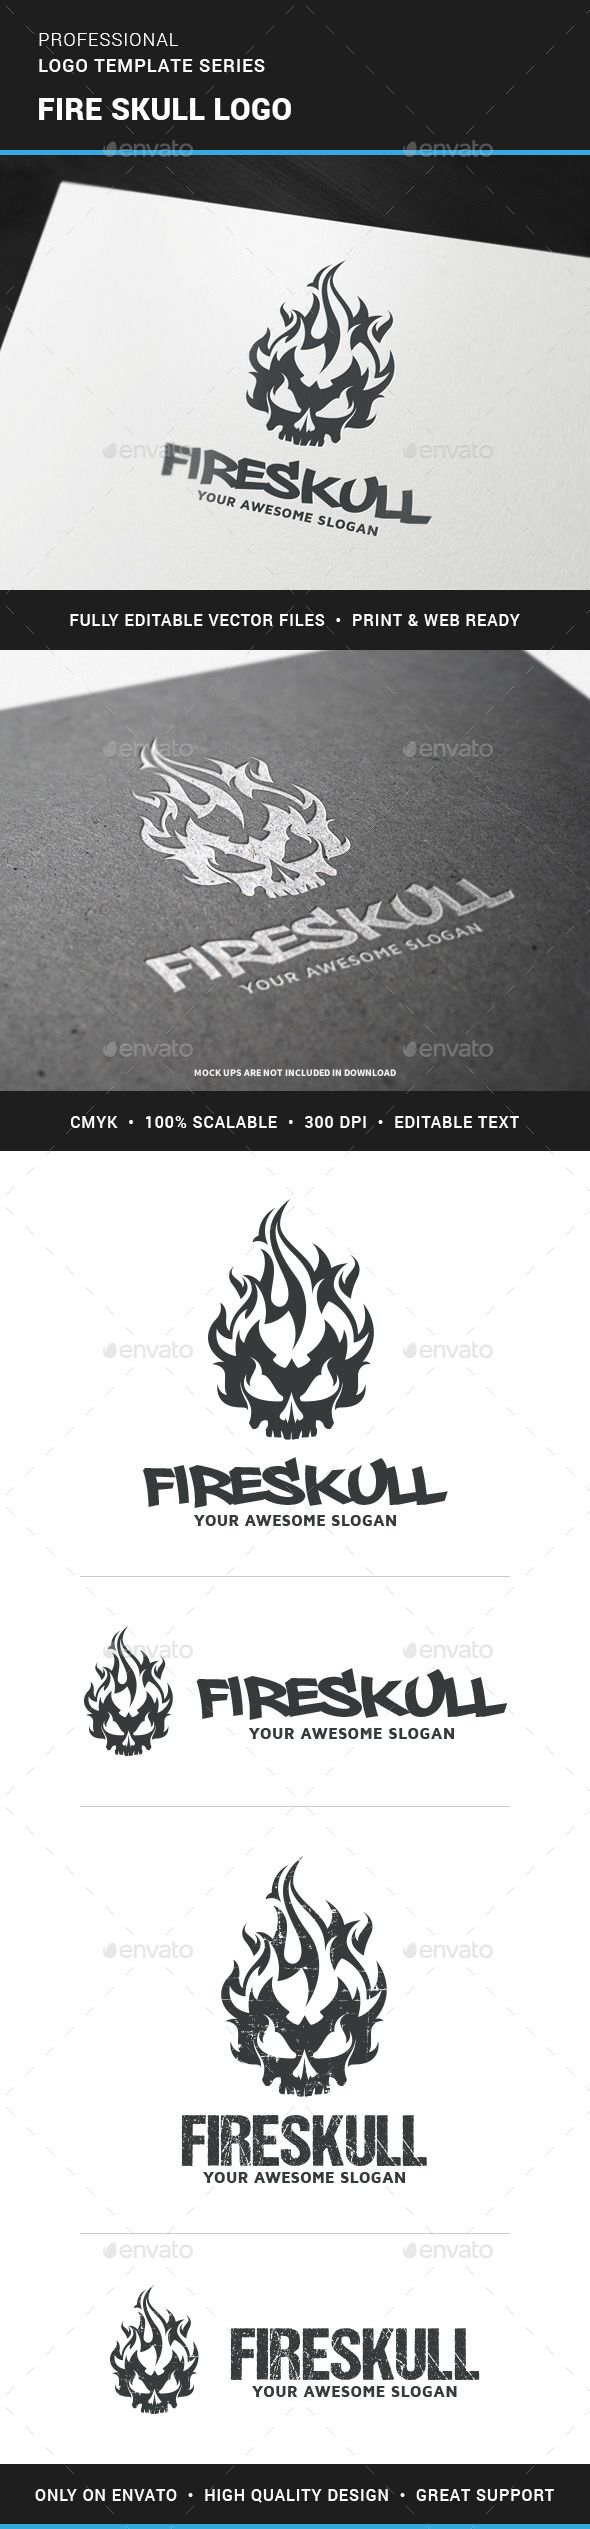 Fire Skull Logo Template